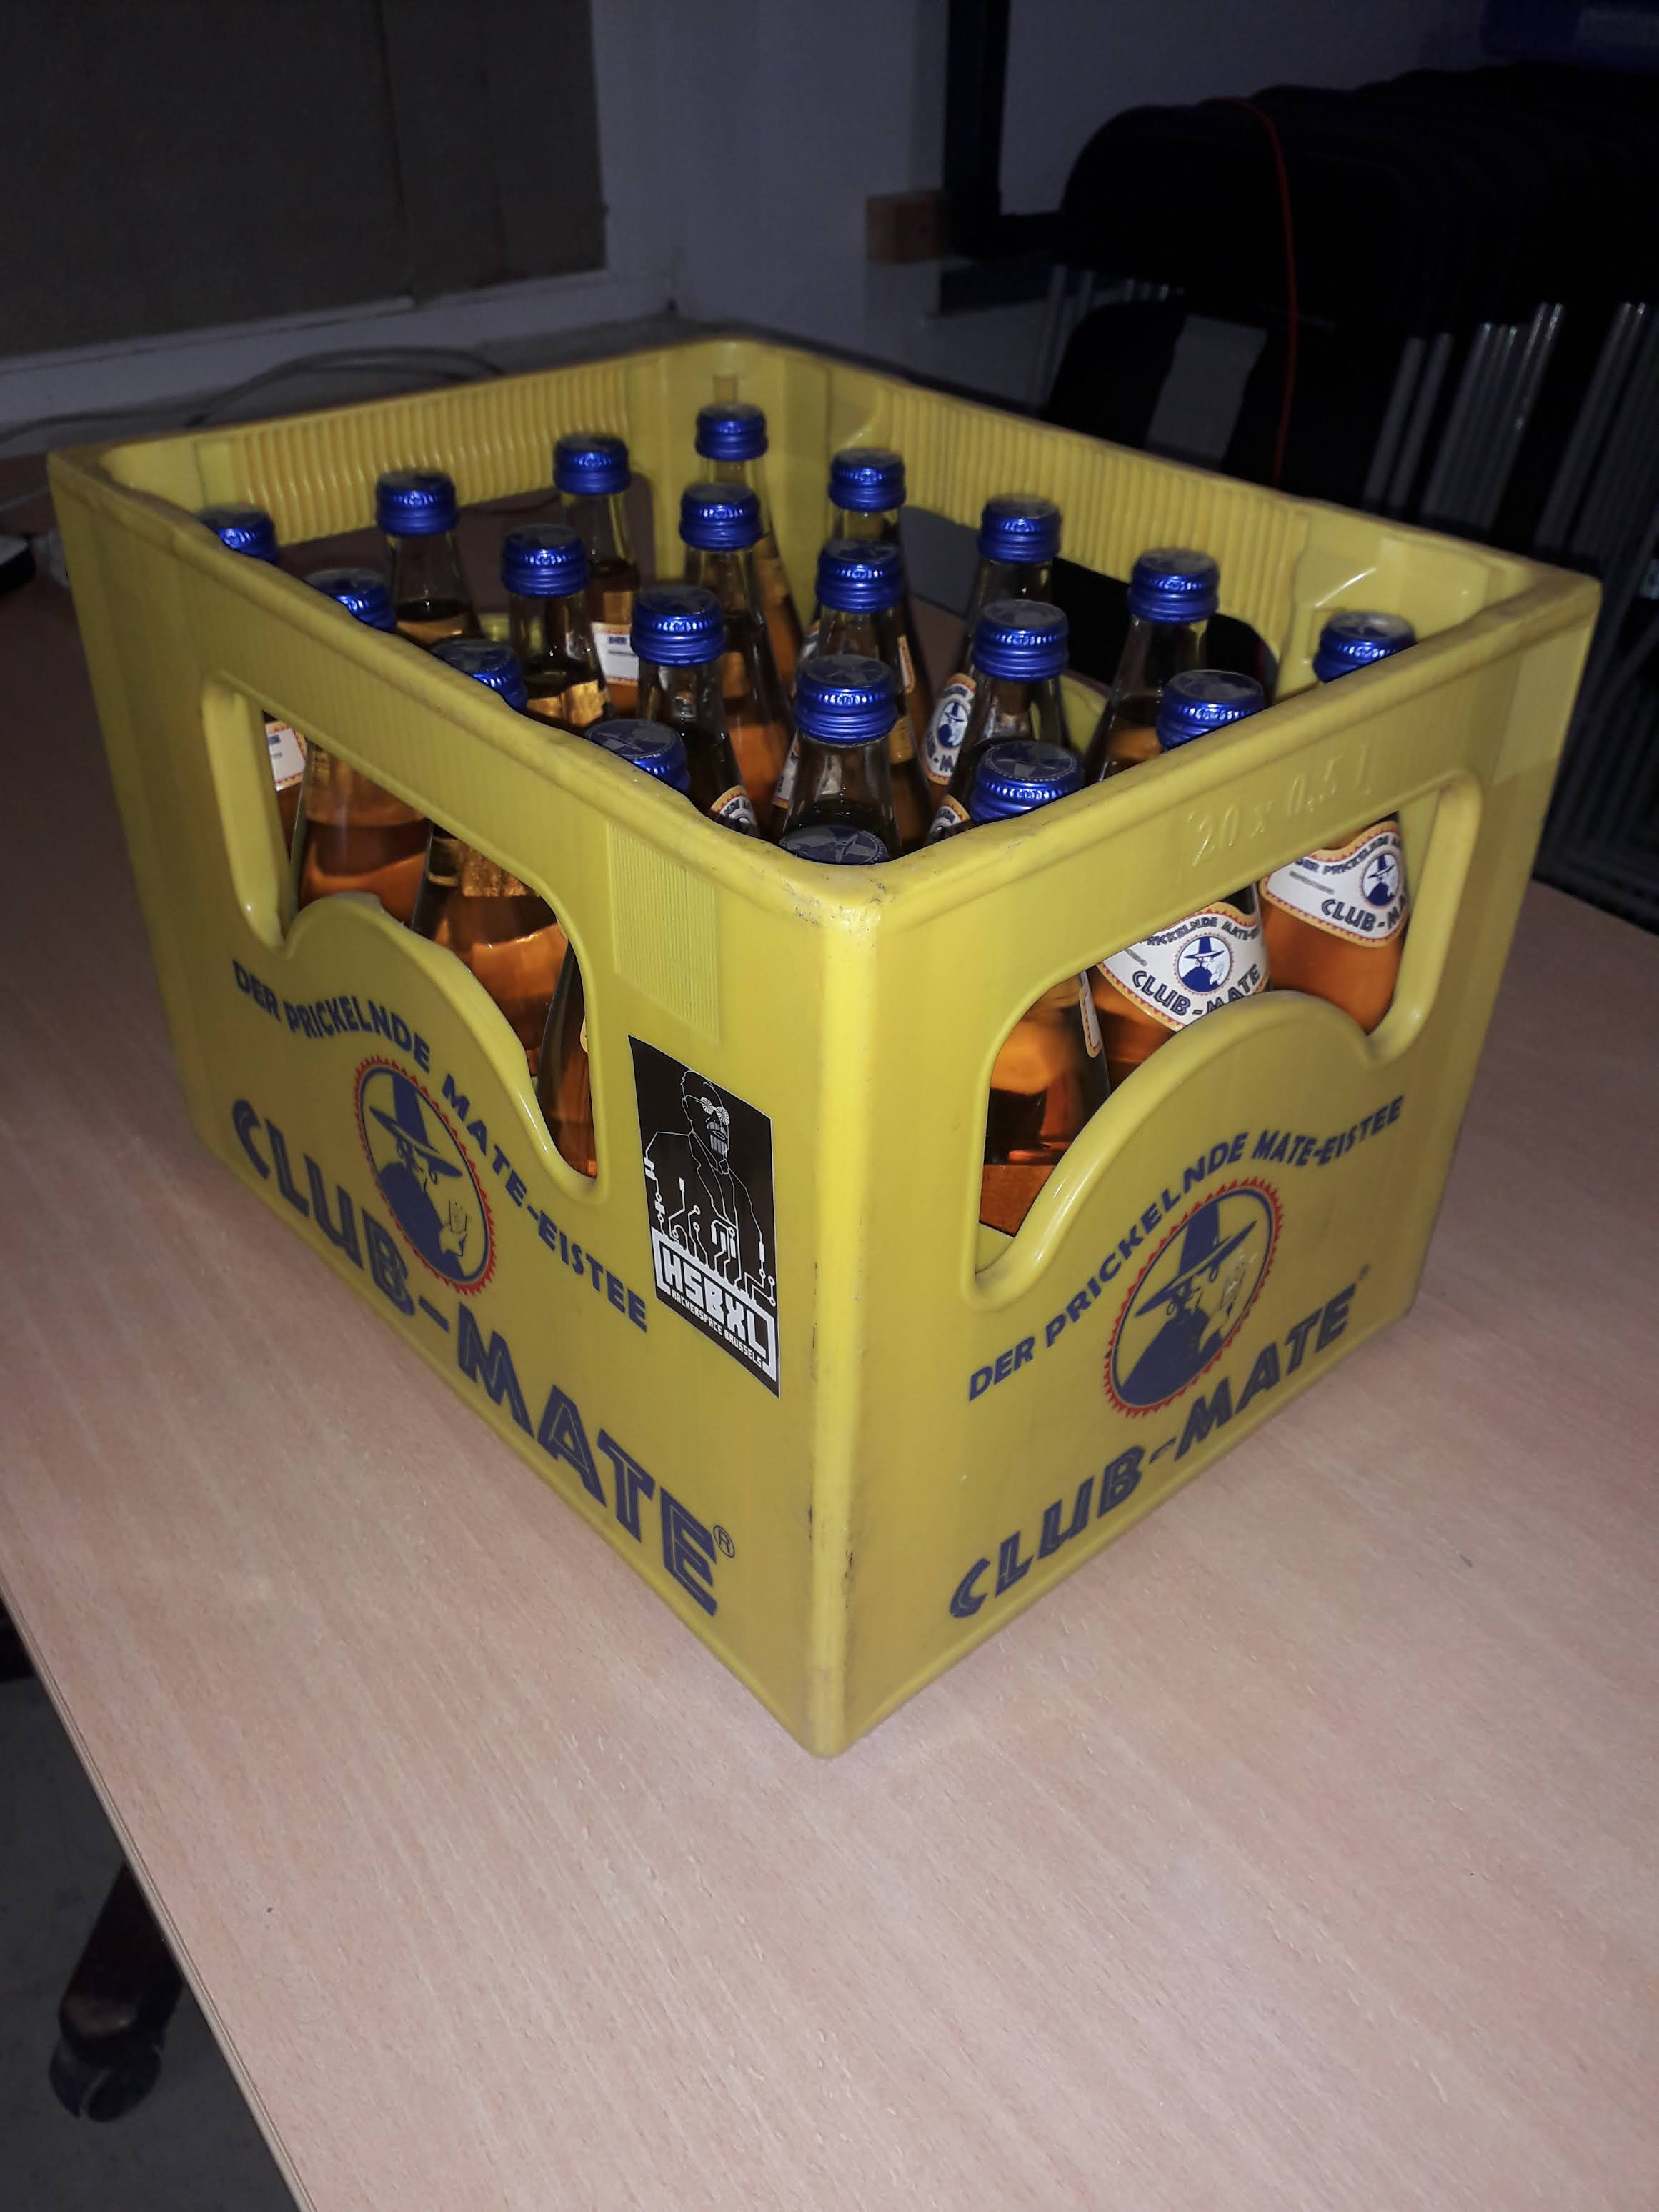 content/projects/Support_Your_Hackerspace/clubmate.jpg